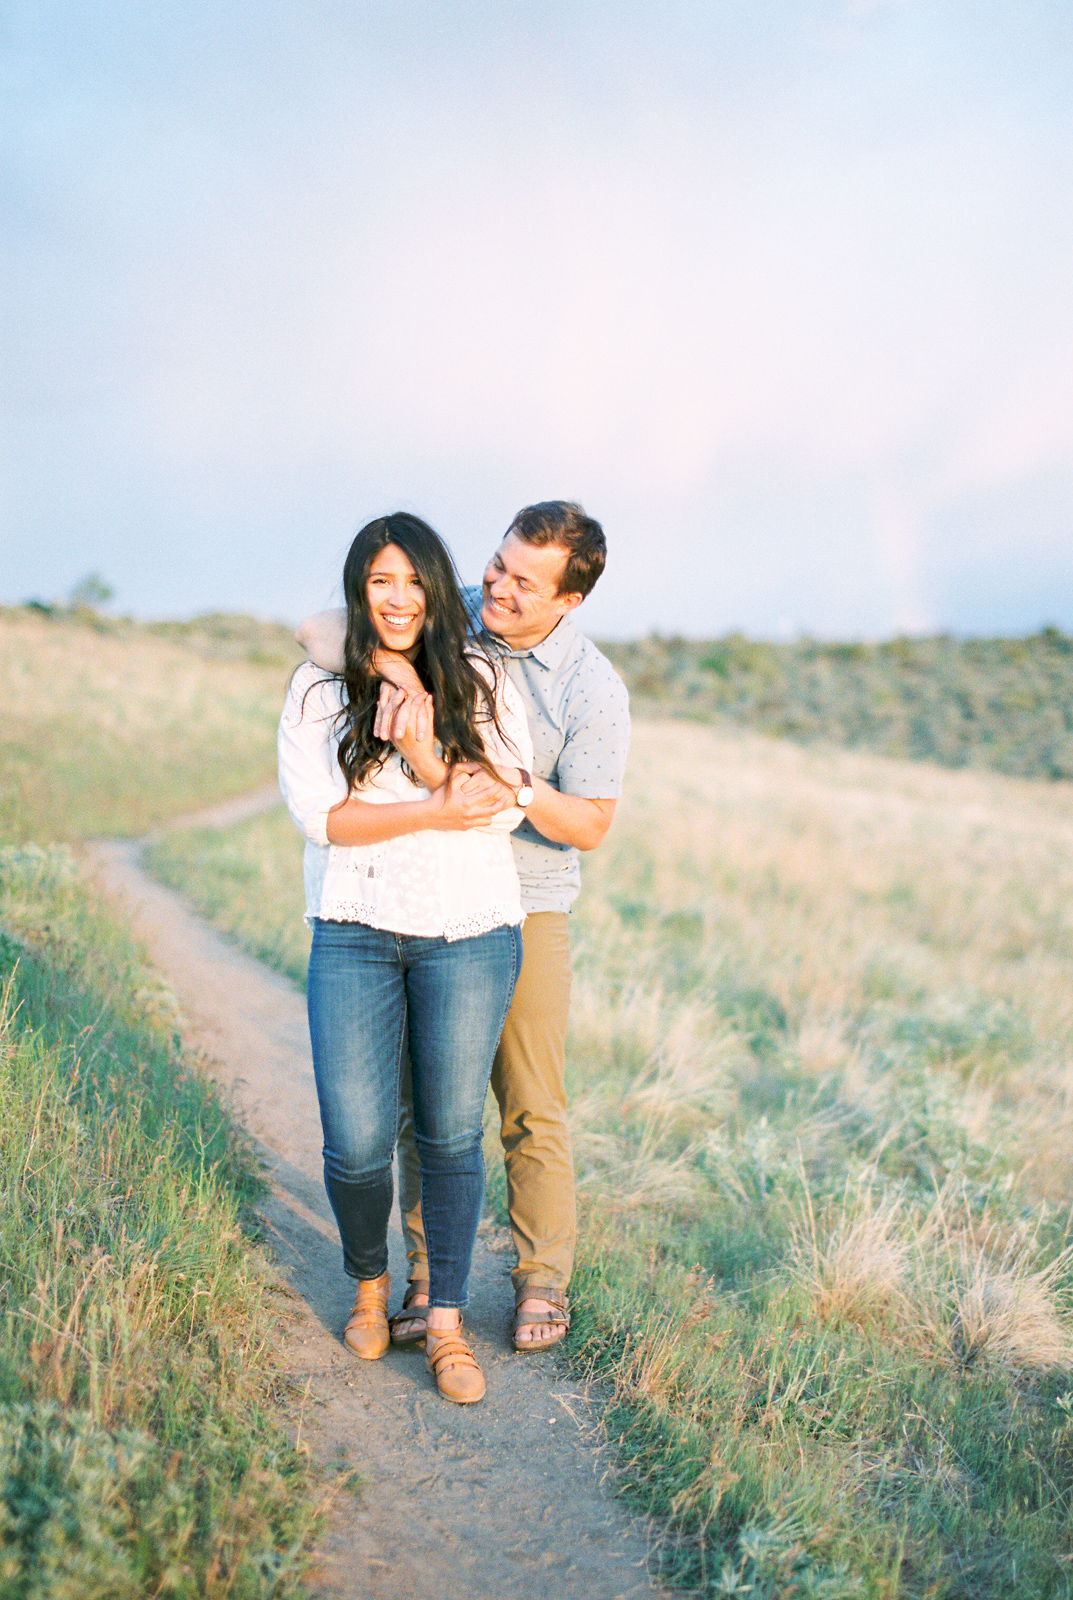 boise-idaho-engagement-photos-eagle-meridian-29.jpg